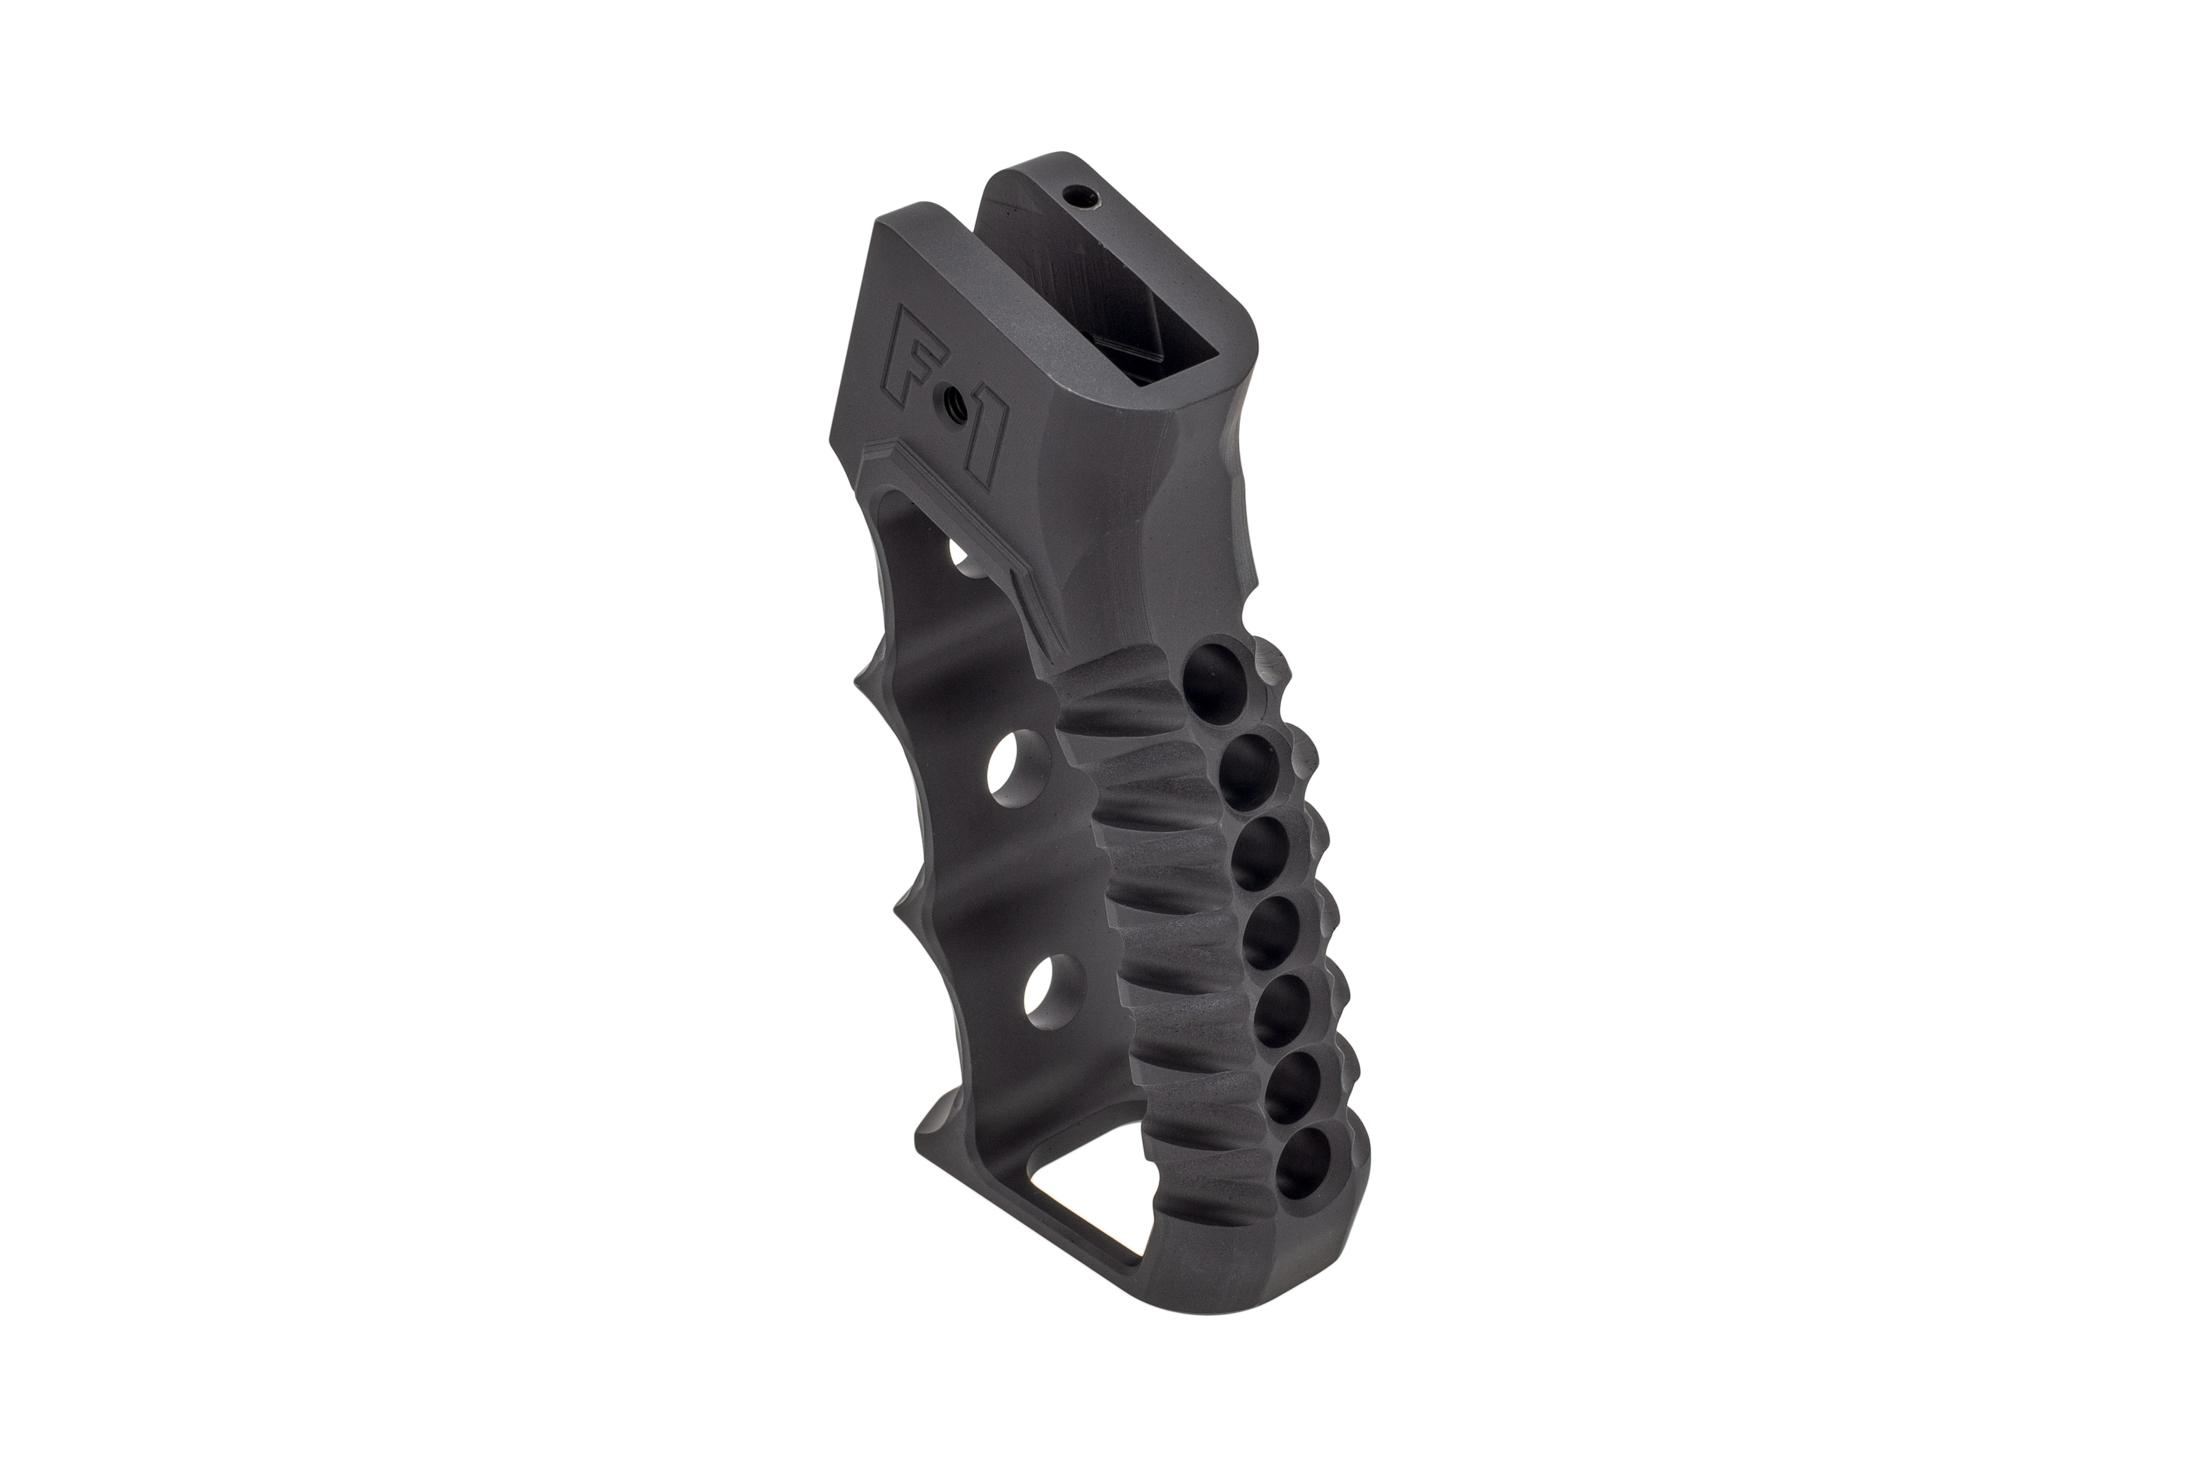 F-1 Firearms ST2 Skeletonized AR-15 Pistol Grip with Finger Attachments